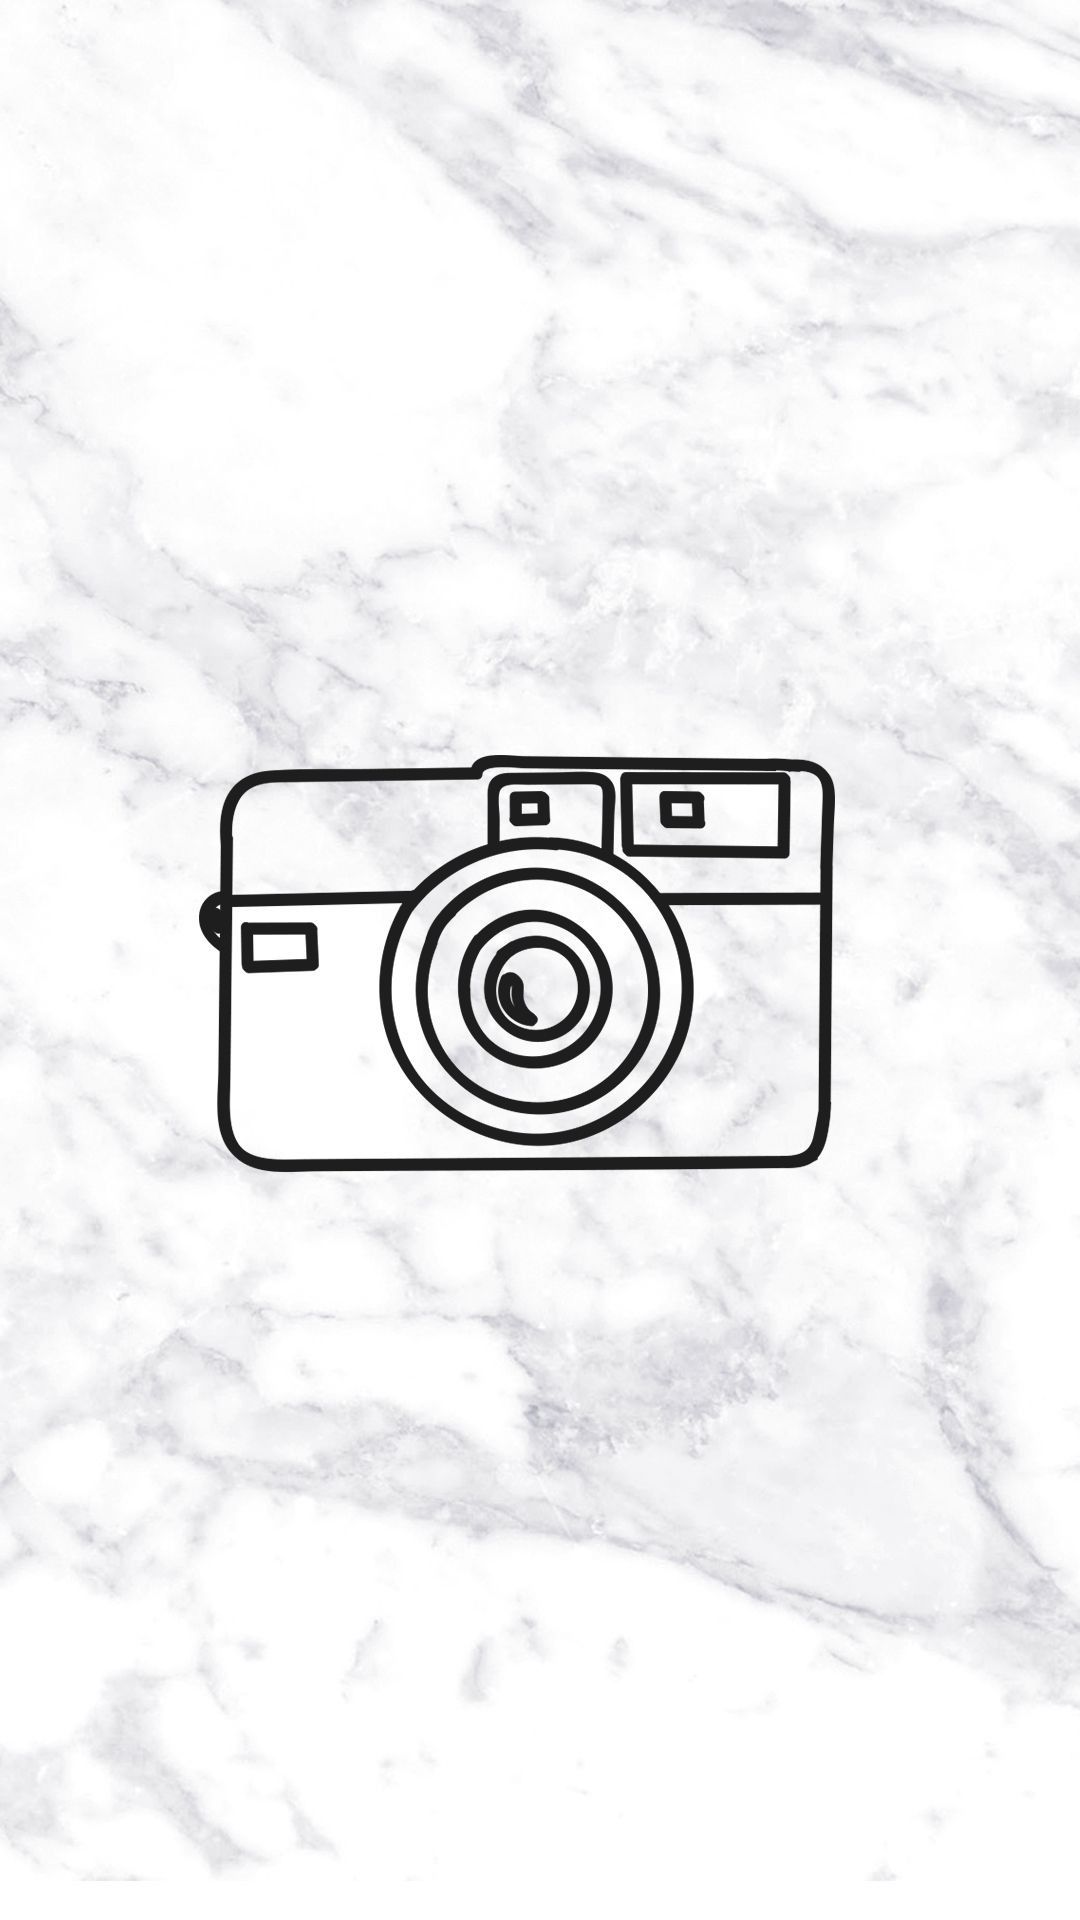 instagram highlight covers marble black and white instagram instagram logo snapchat icon instagram highlight covers marble